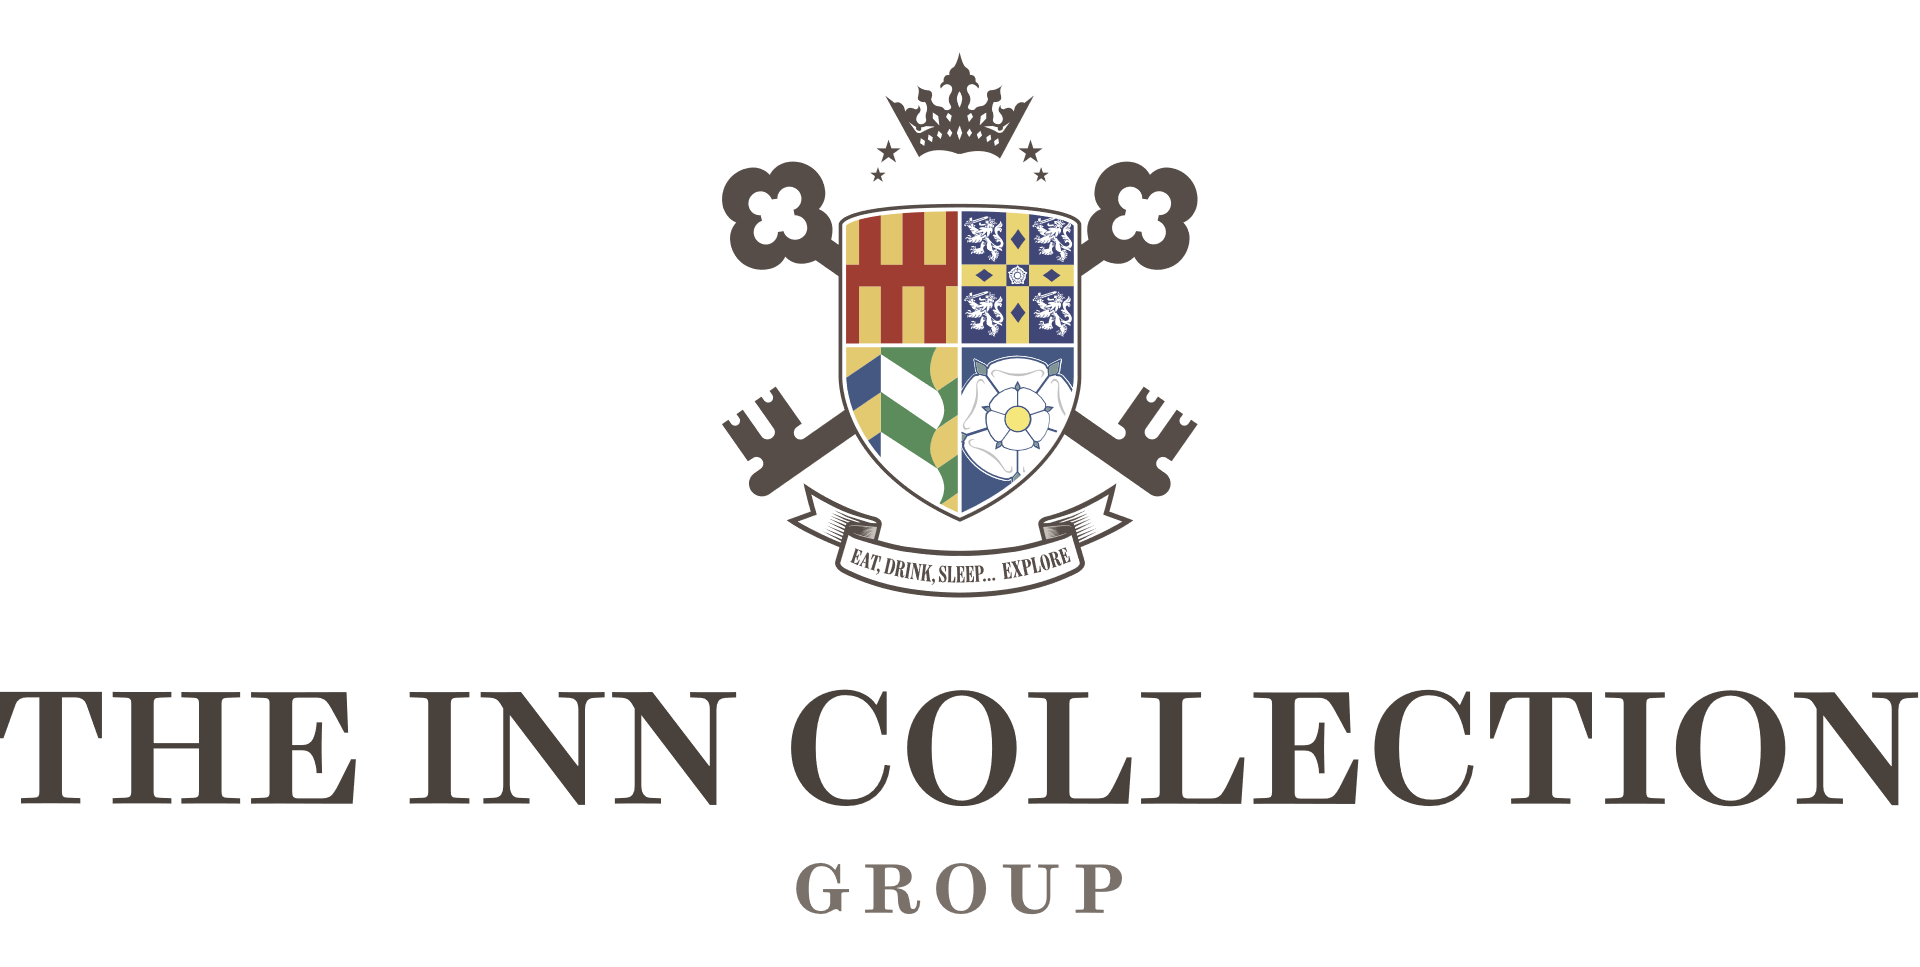 The Inn Collection logo